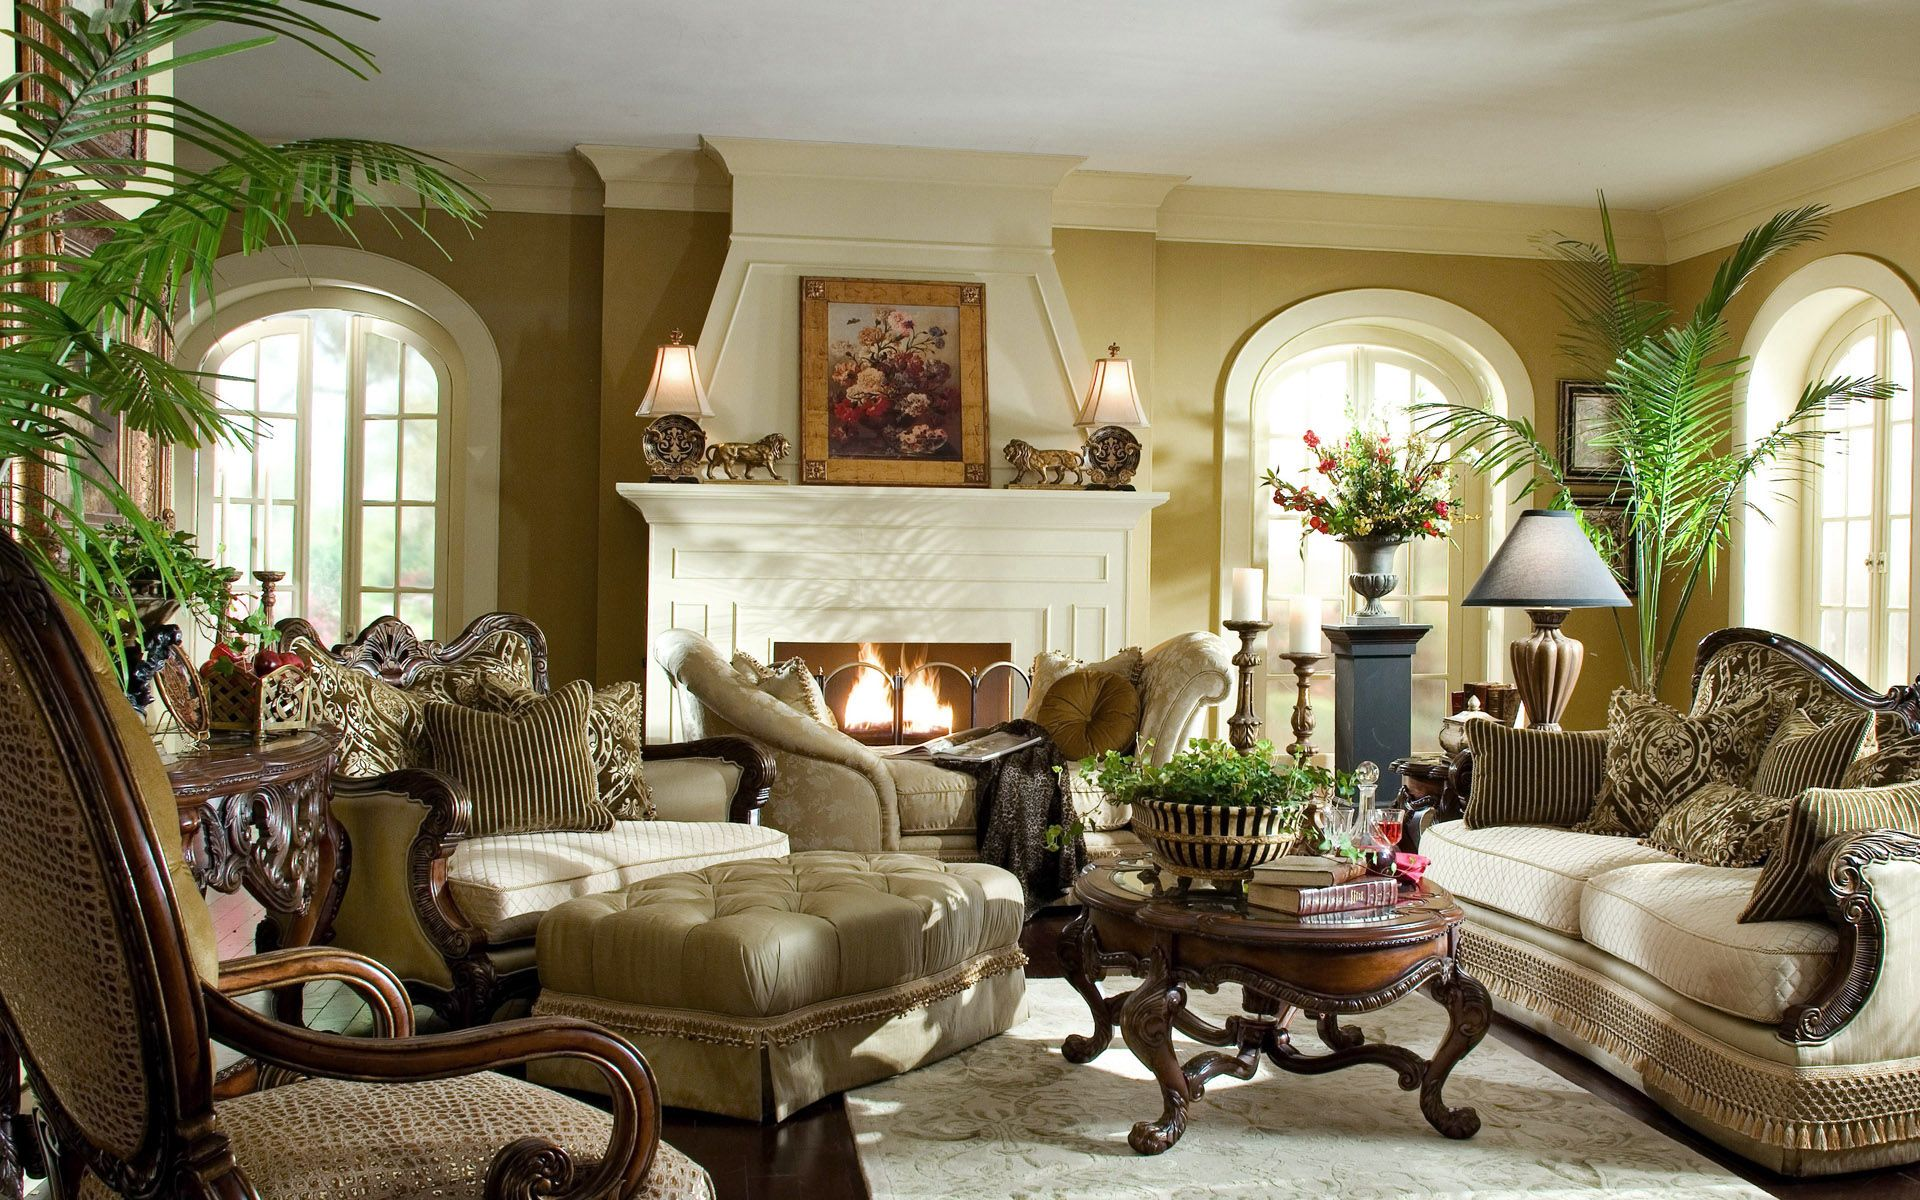 Are You Looking For Interior Design Hd Wallpapers Free Download